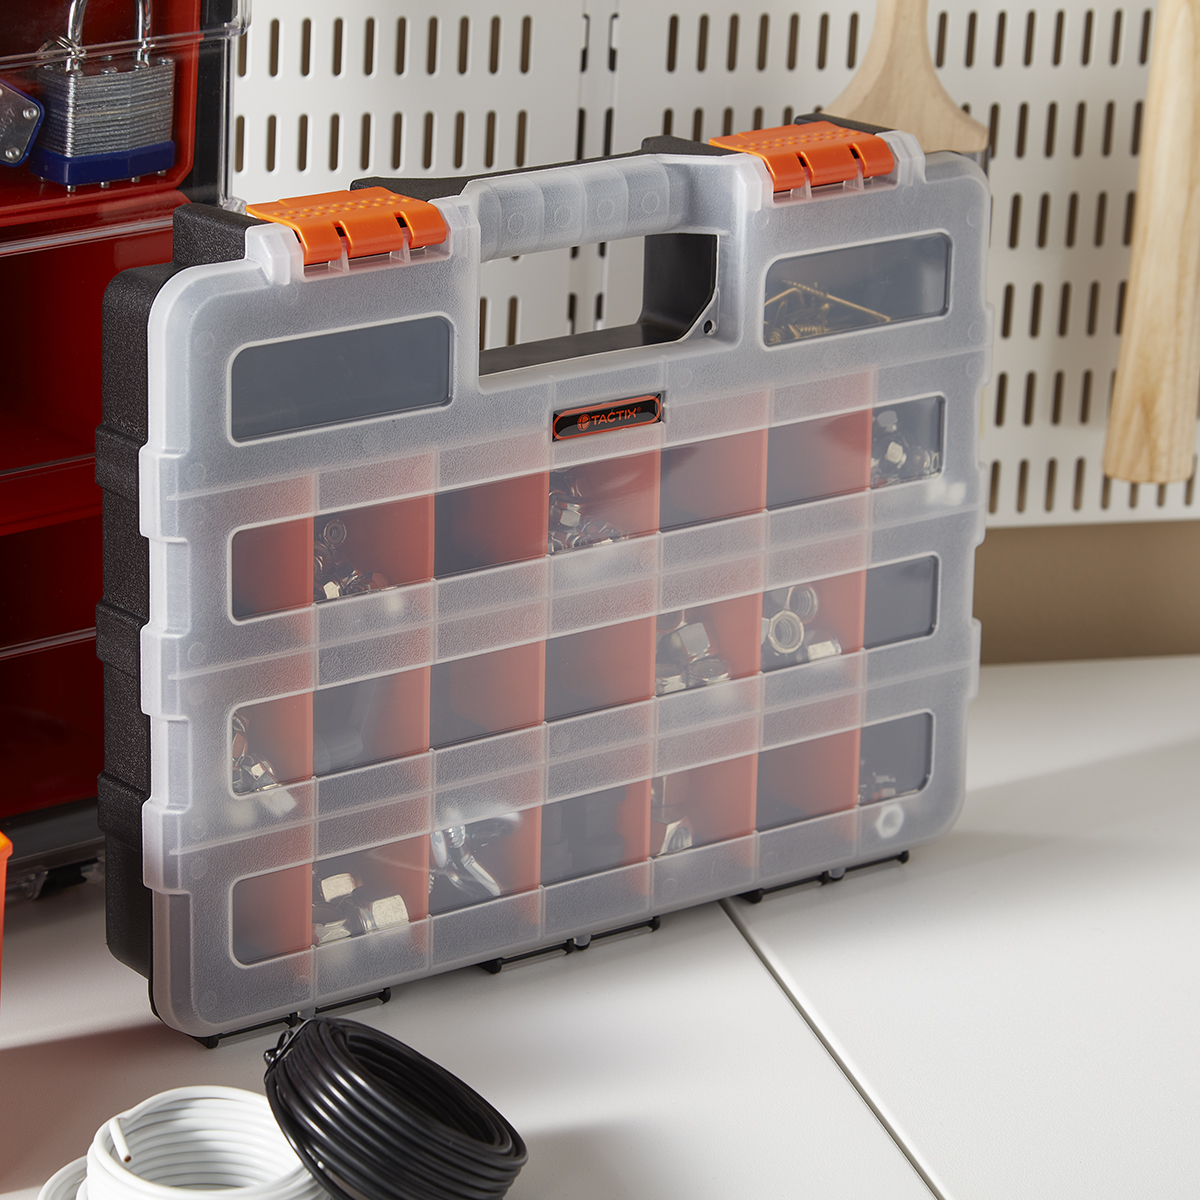 Small Parts Organizer with Removable Dividers